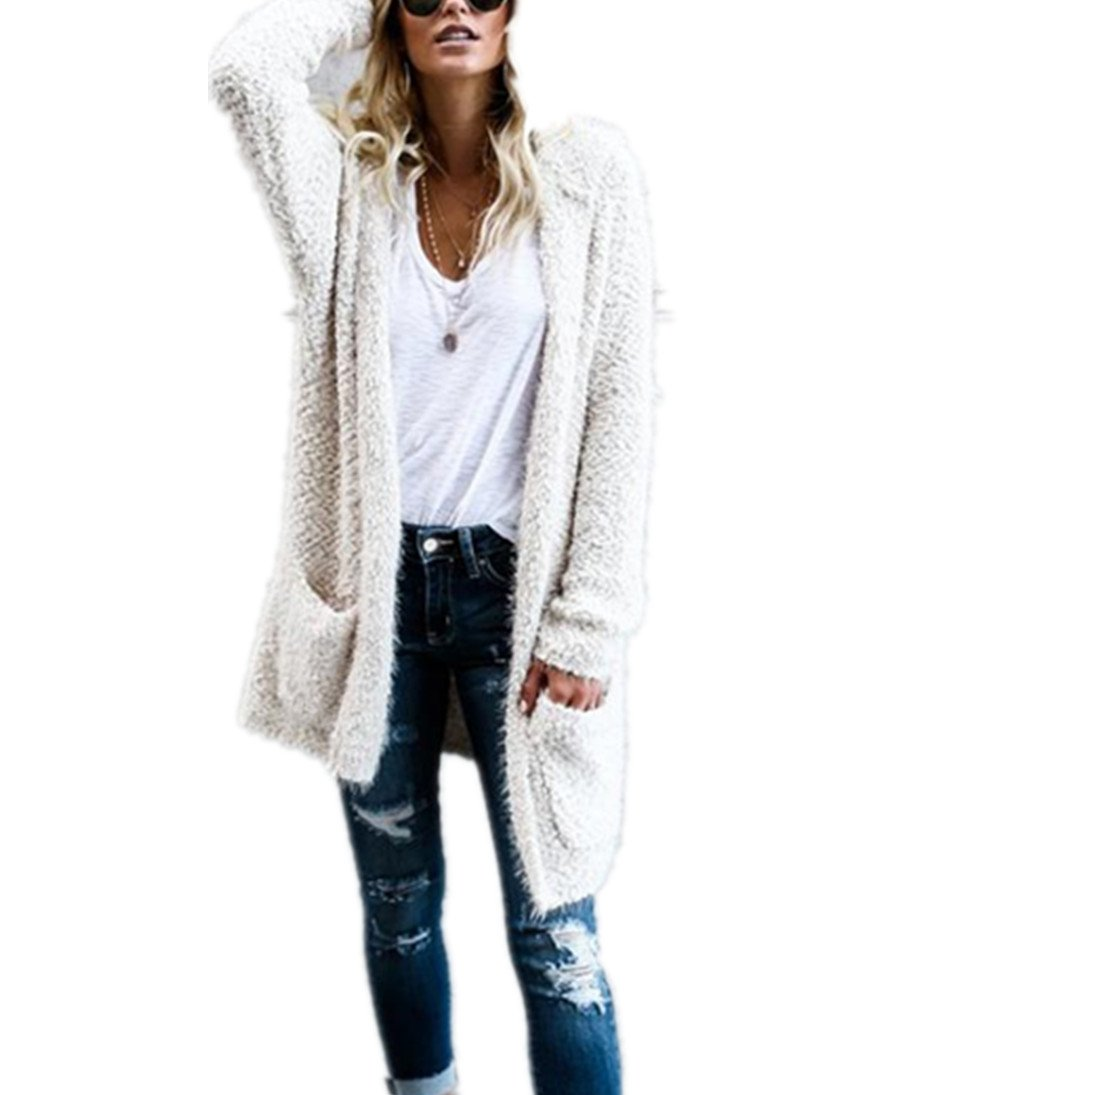 Gallity Women Sweaters Hoodie Knit Long Sleeve Lambswool Cardigan Outerwear with Pocket Warm (White, L)